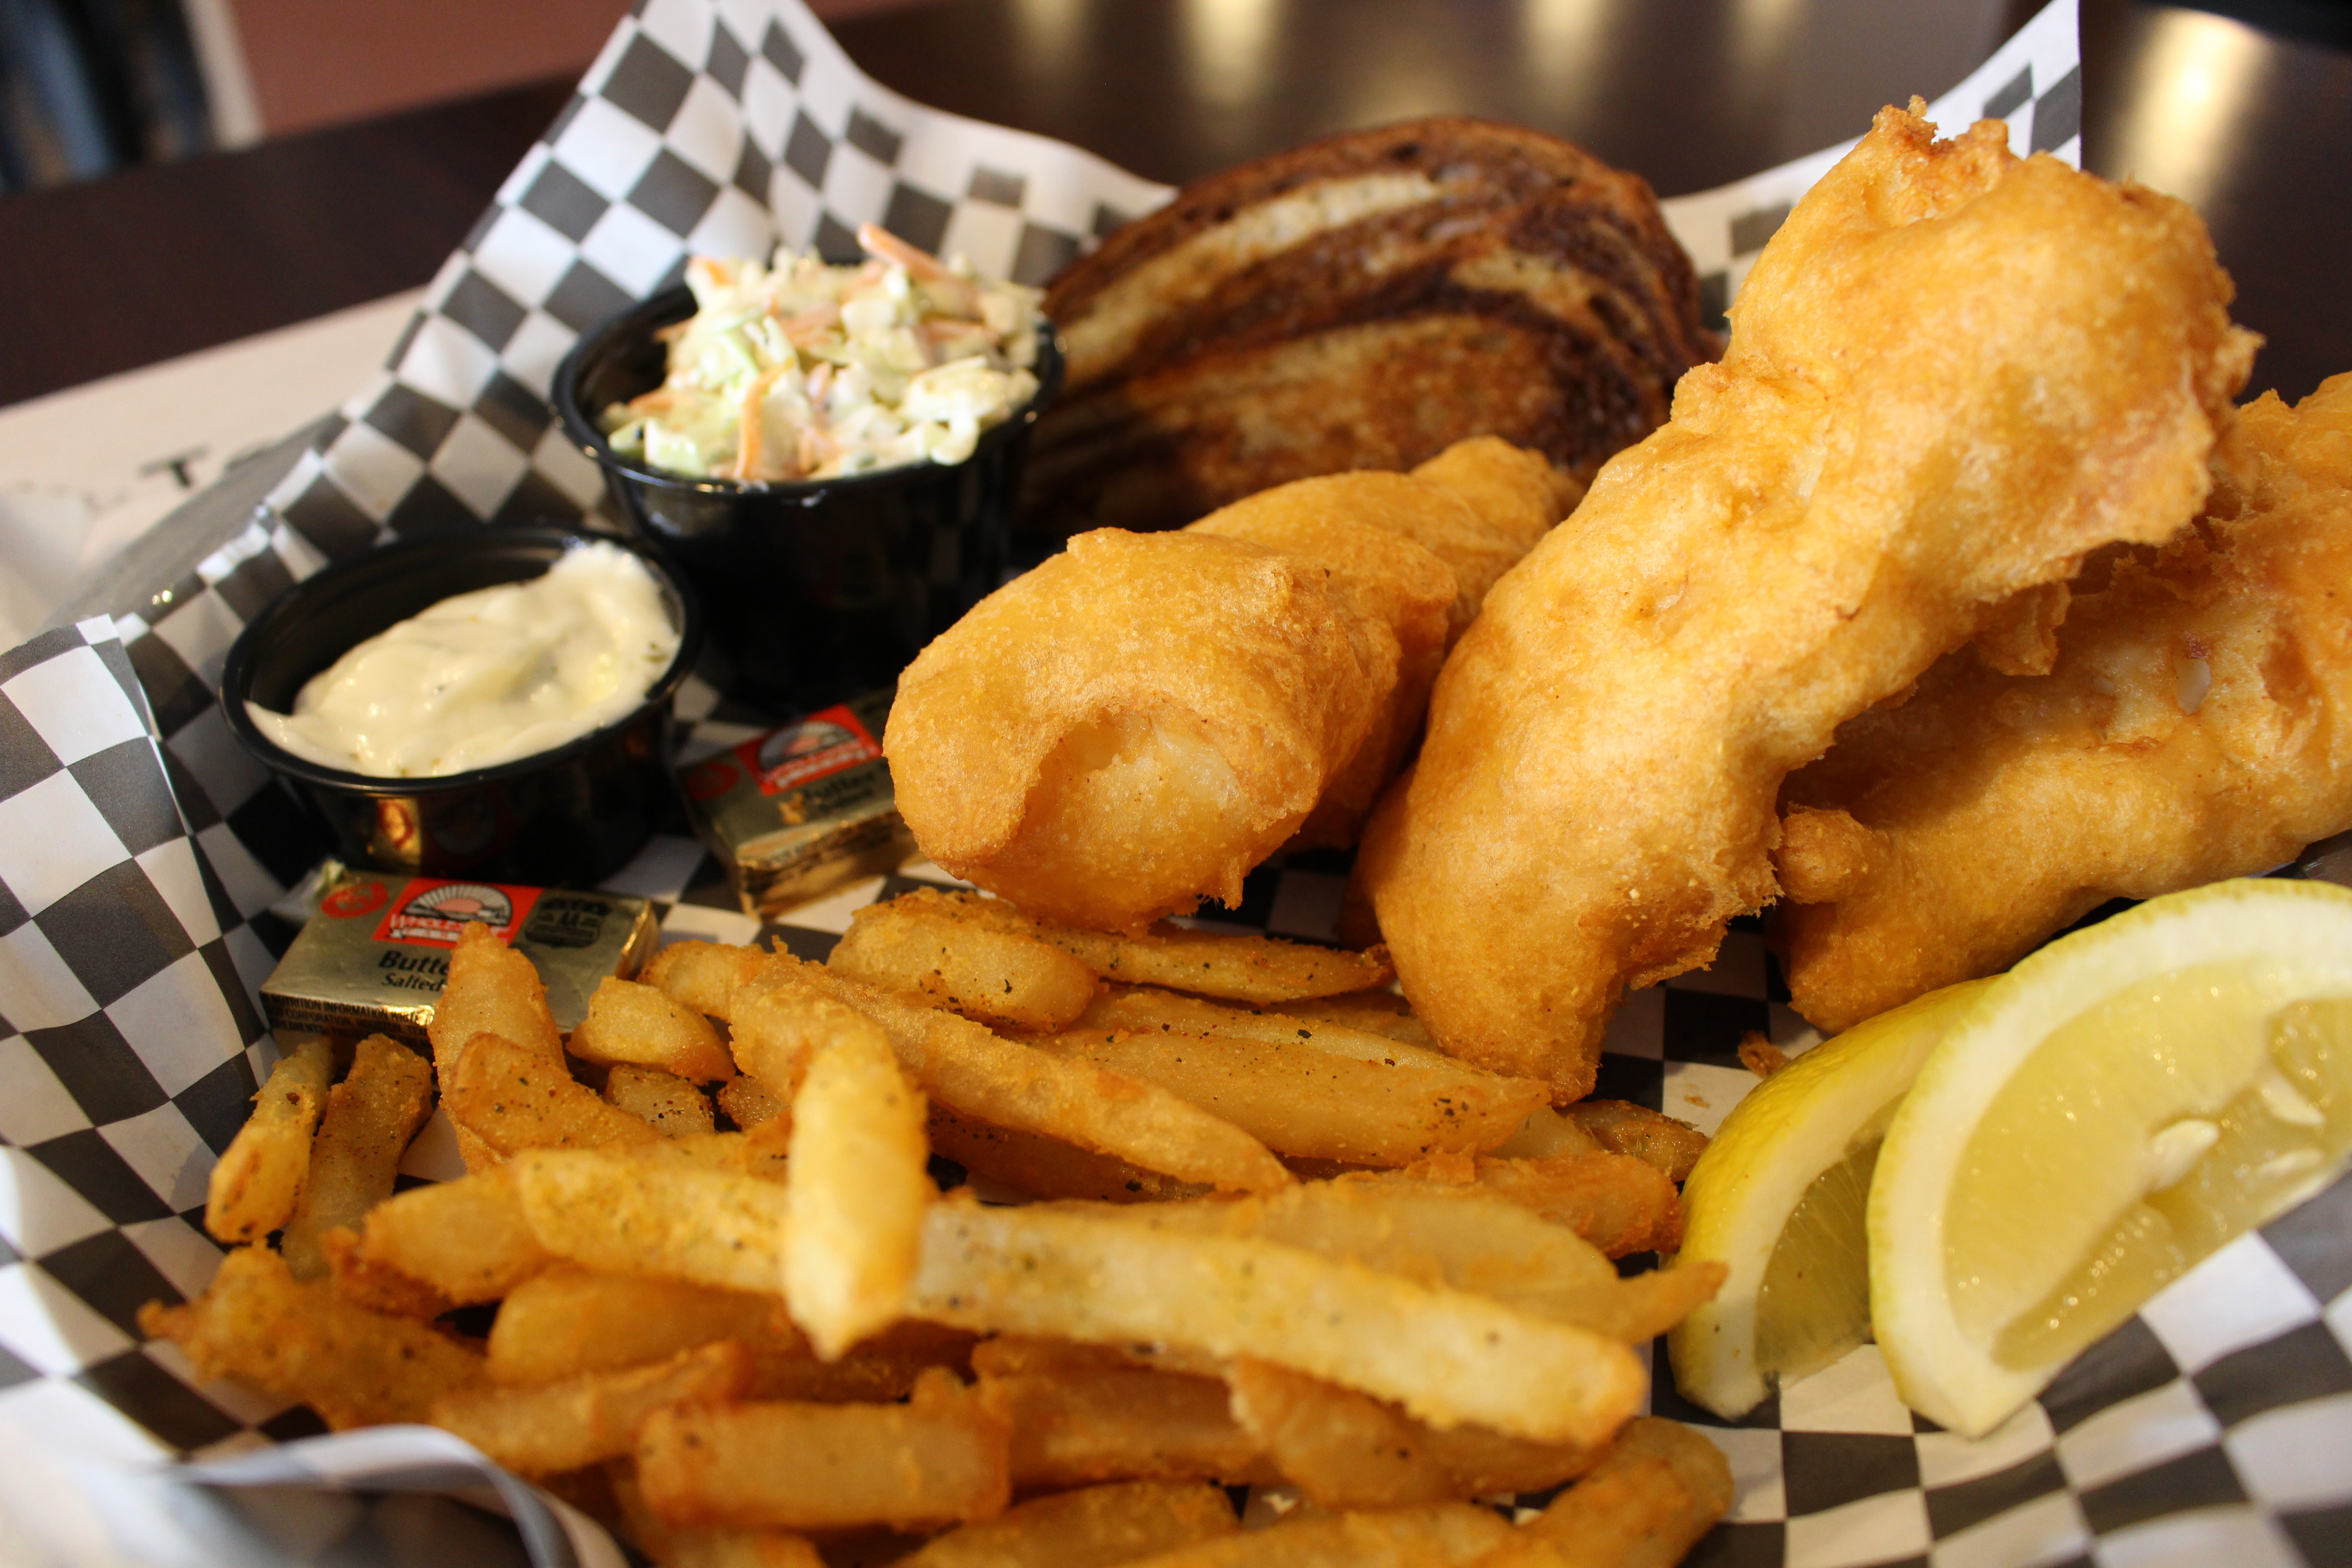 fish fry   wisconsin favorite   bowling alley serving fish   fish fry for lent   milwaukee-favorite   fresh-made fish fry   jb's on 41   junction bar & grill   milwaukee, wi